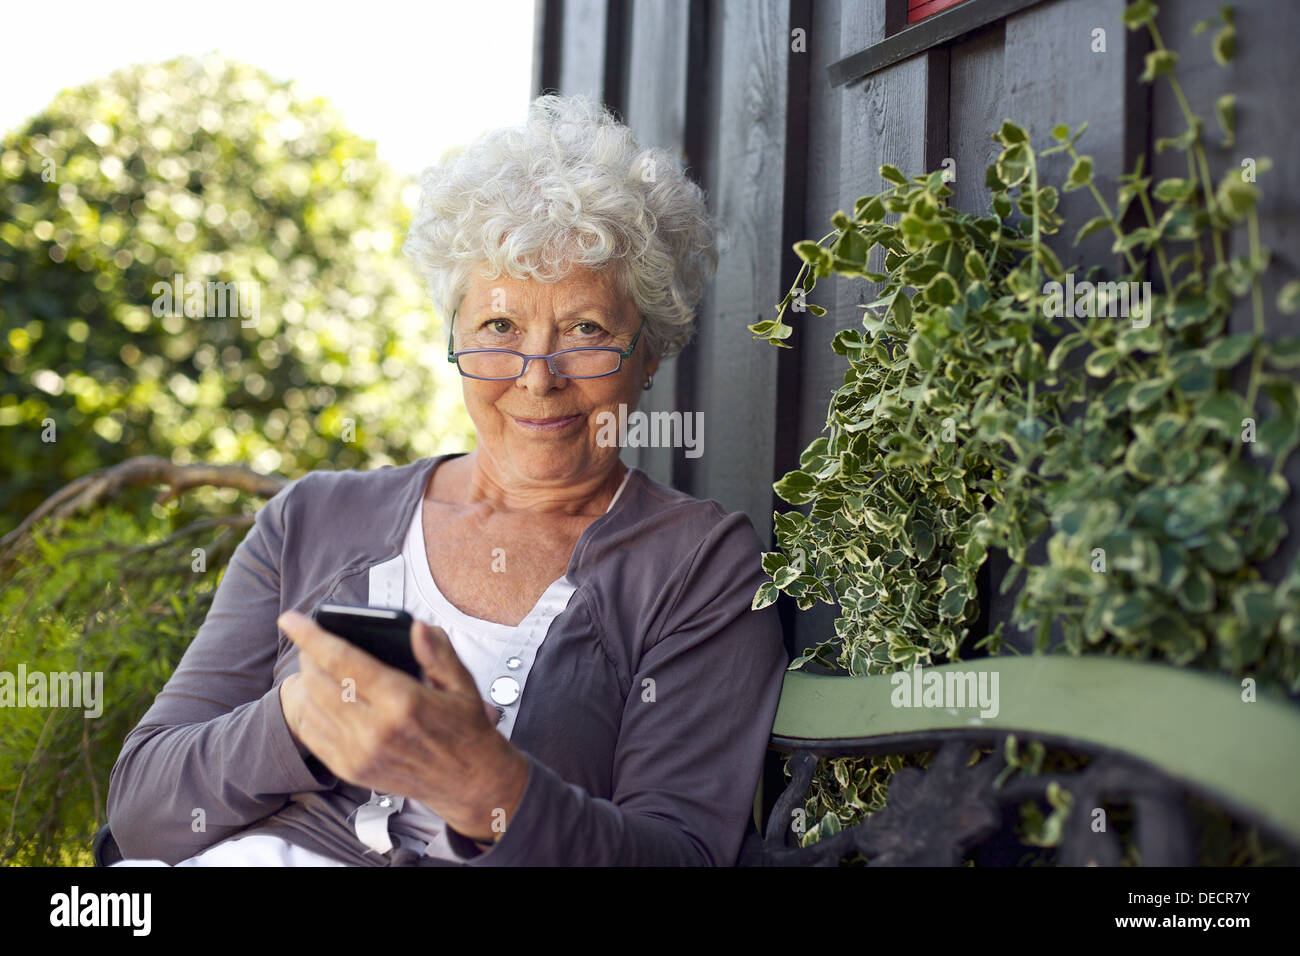 Senior woman using a mobile phone while sitting on bench in her backyard garden - Stock Image